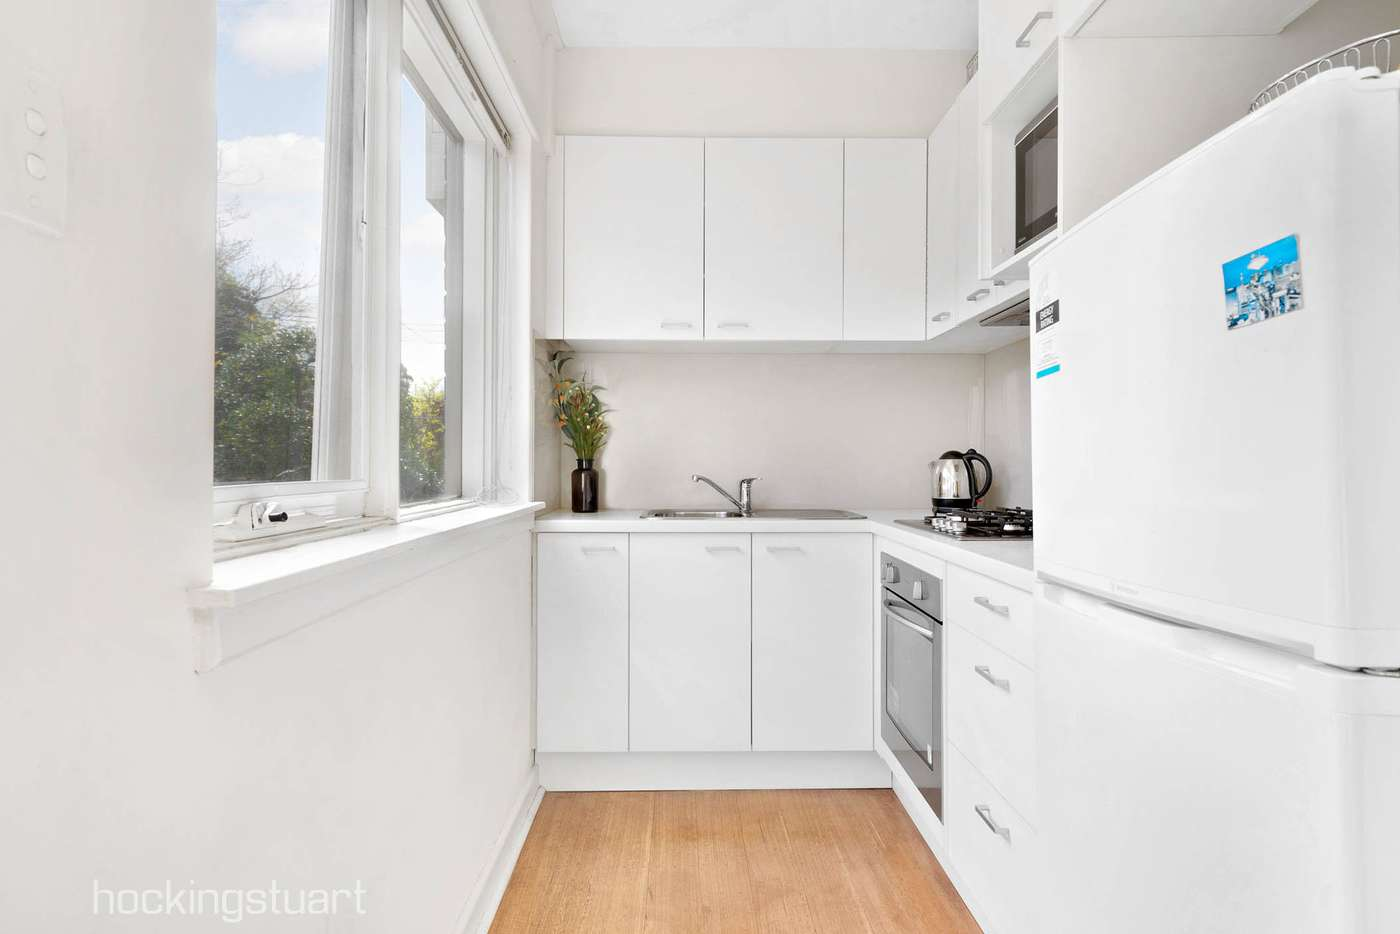 Fifth view of Homely apartment listing, 5/58 Lansdowne Road, St Kilda East VIC 3183